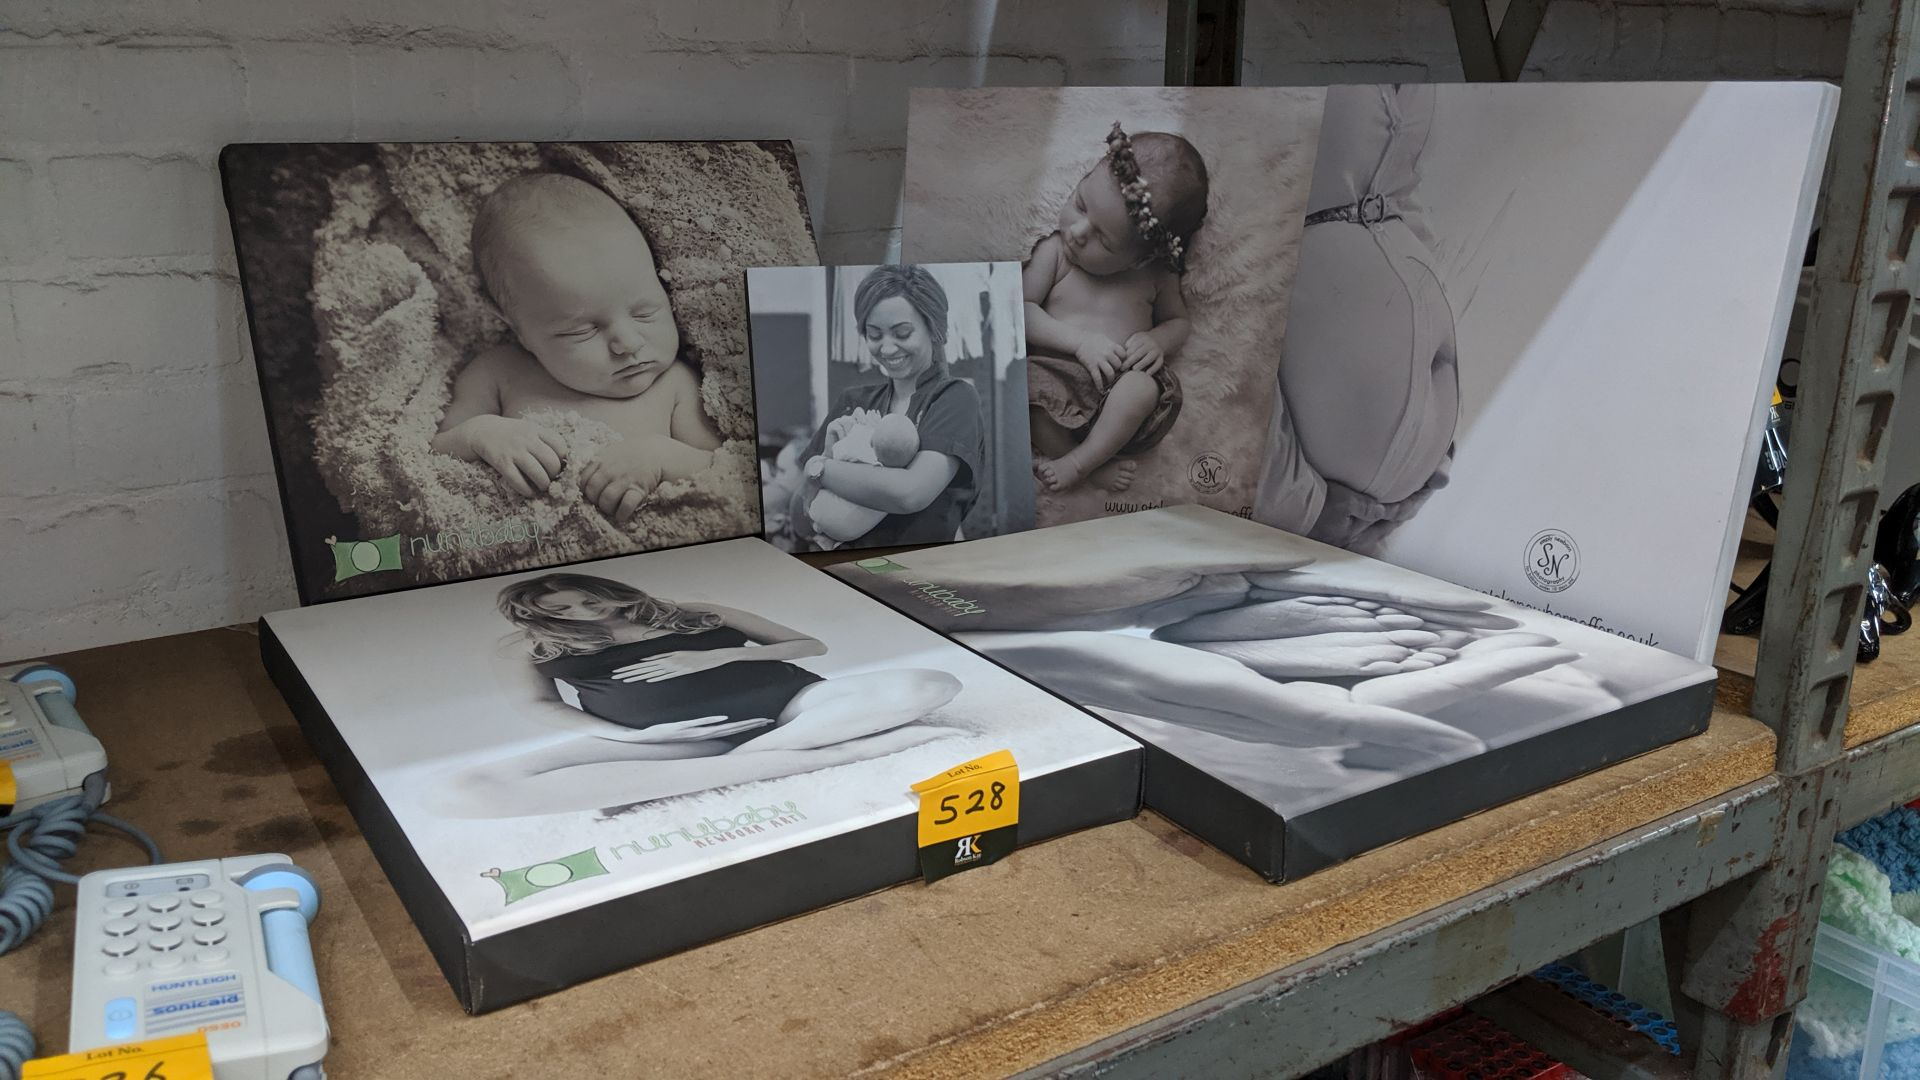 Lot 528 - 6 off assorted canvas box prints. This is one of a large number of lots used/owned by One To One (